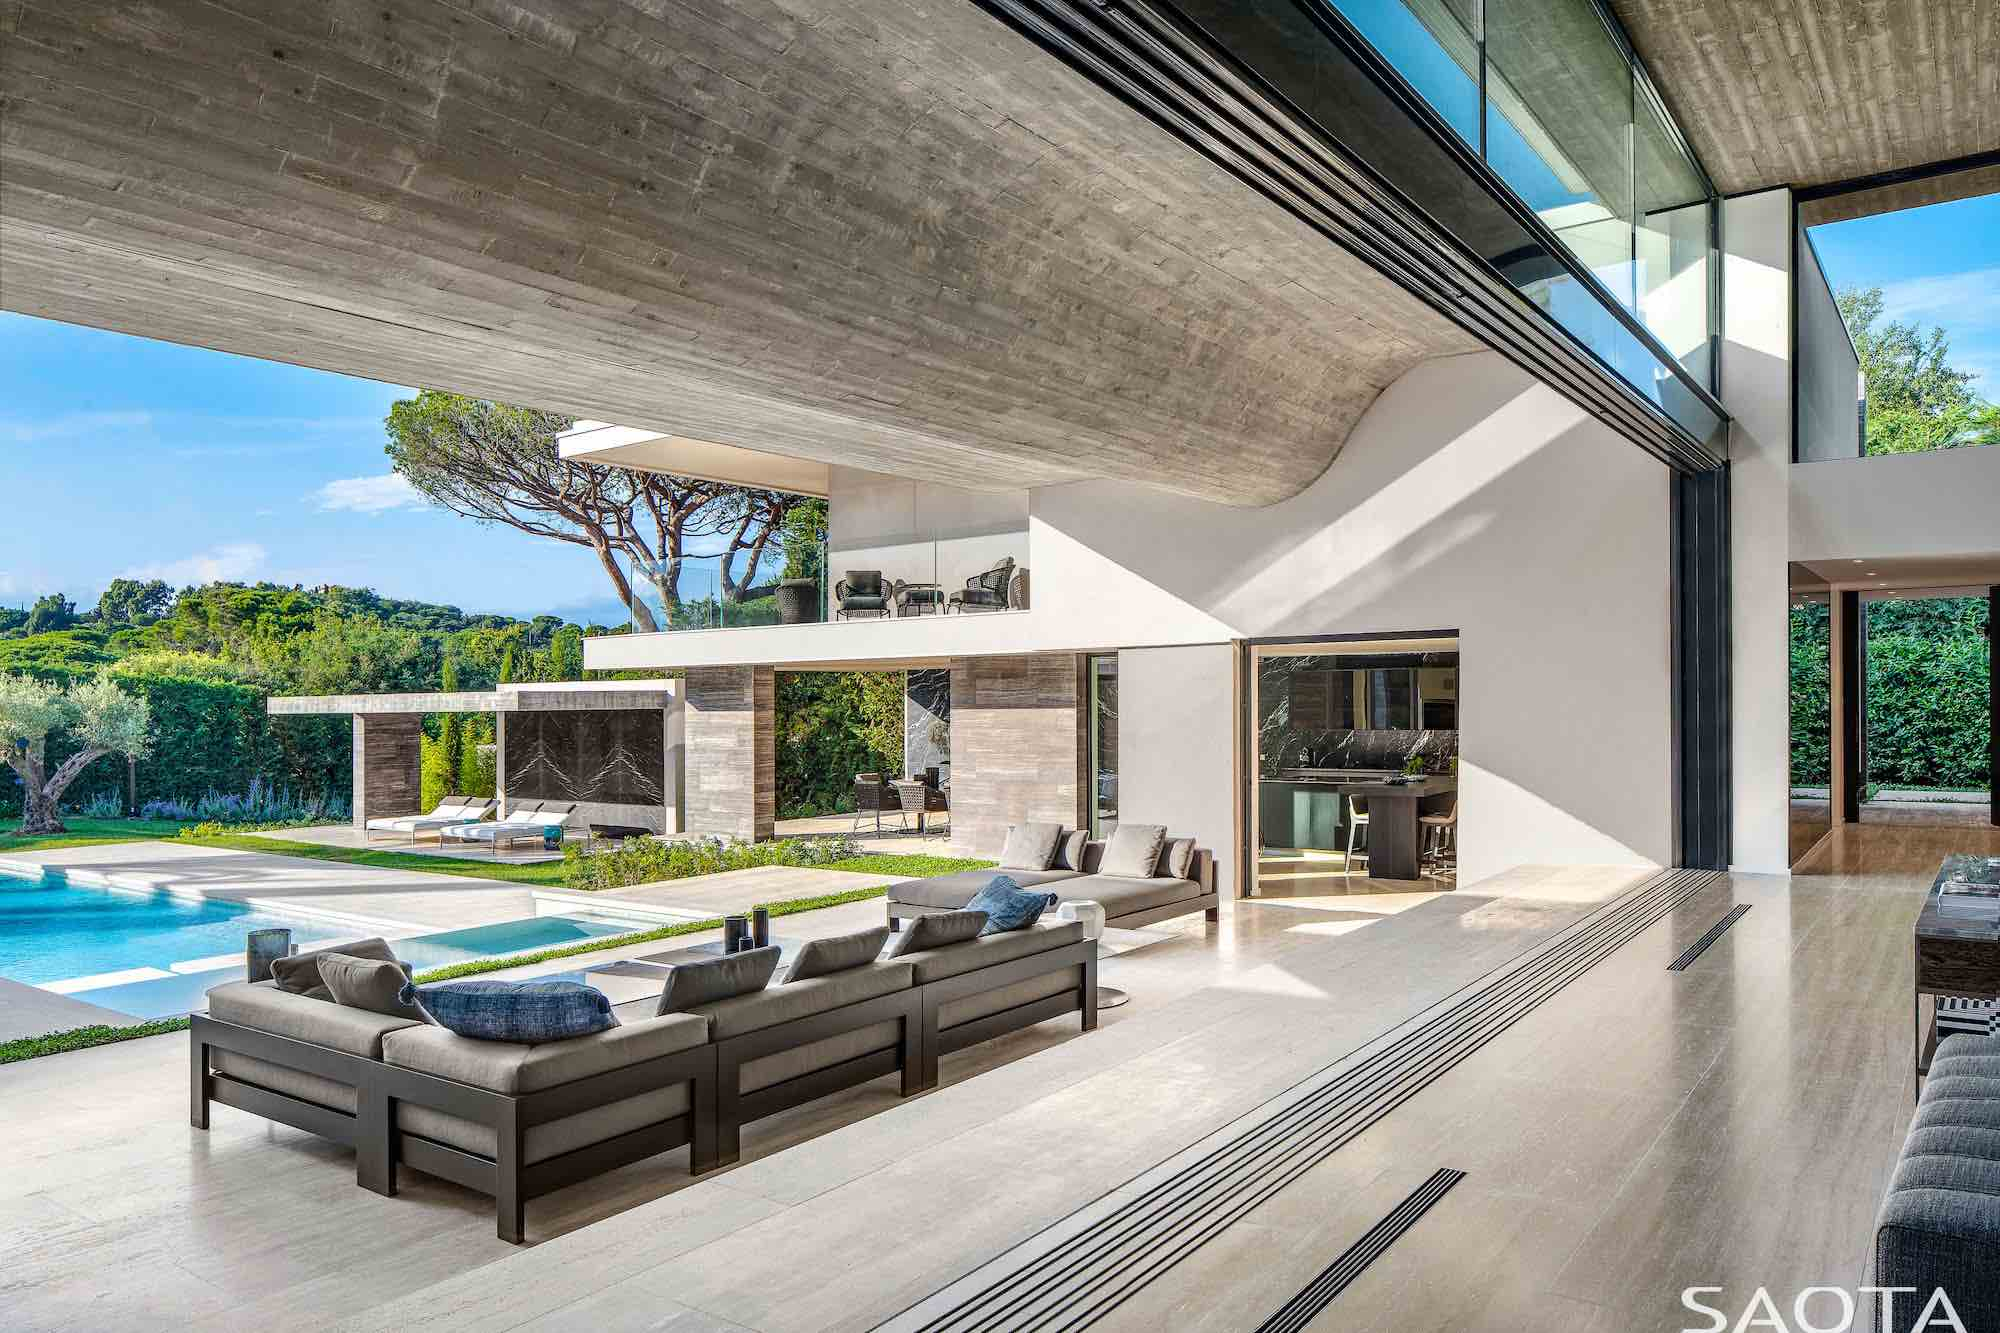 Le Pine, a family home designed by SAOTA has a dramatically folded floating roof